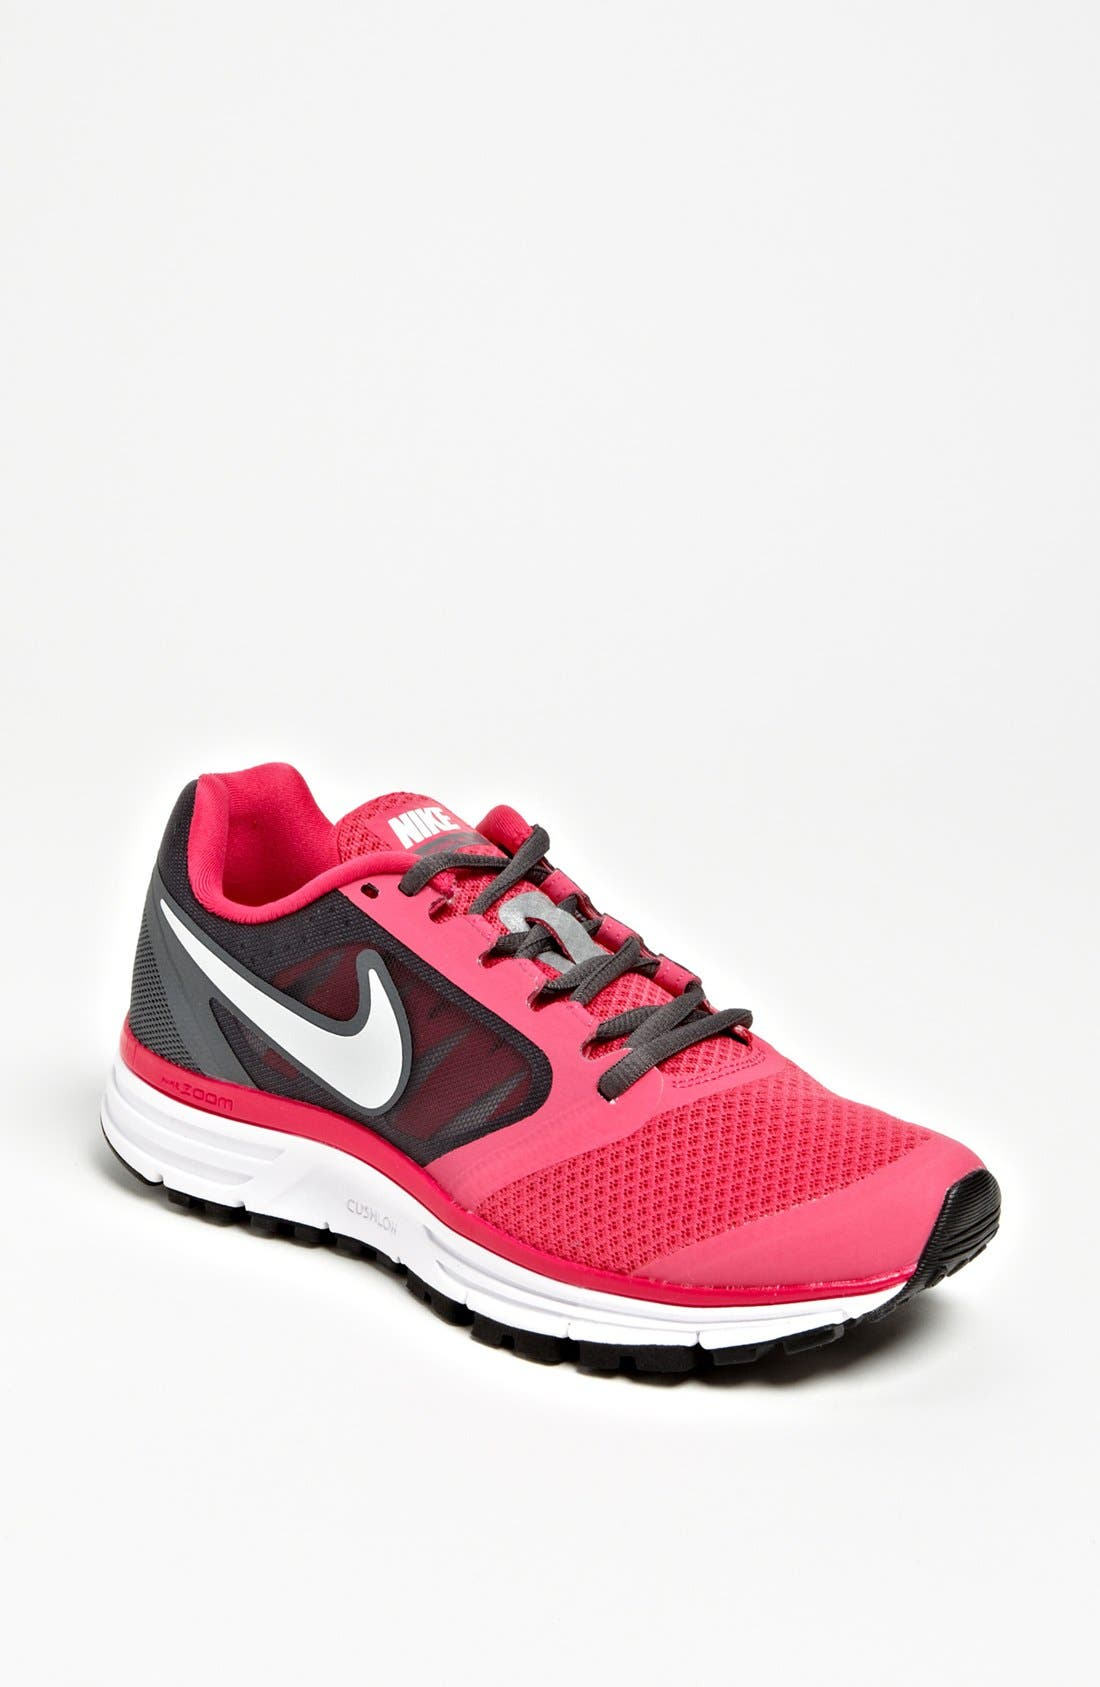 Alternate Image 1 Selected - Nike 'Zoom Vomero+ 8' Running Shoe (Women)